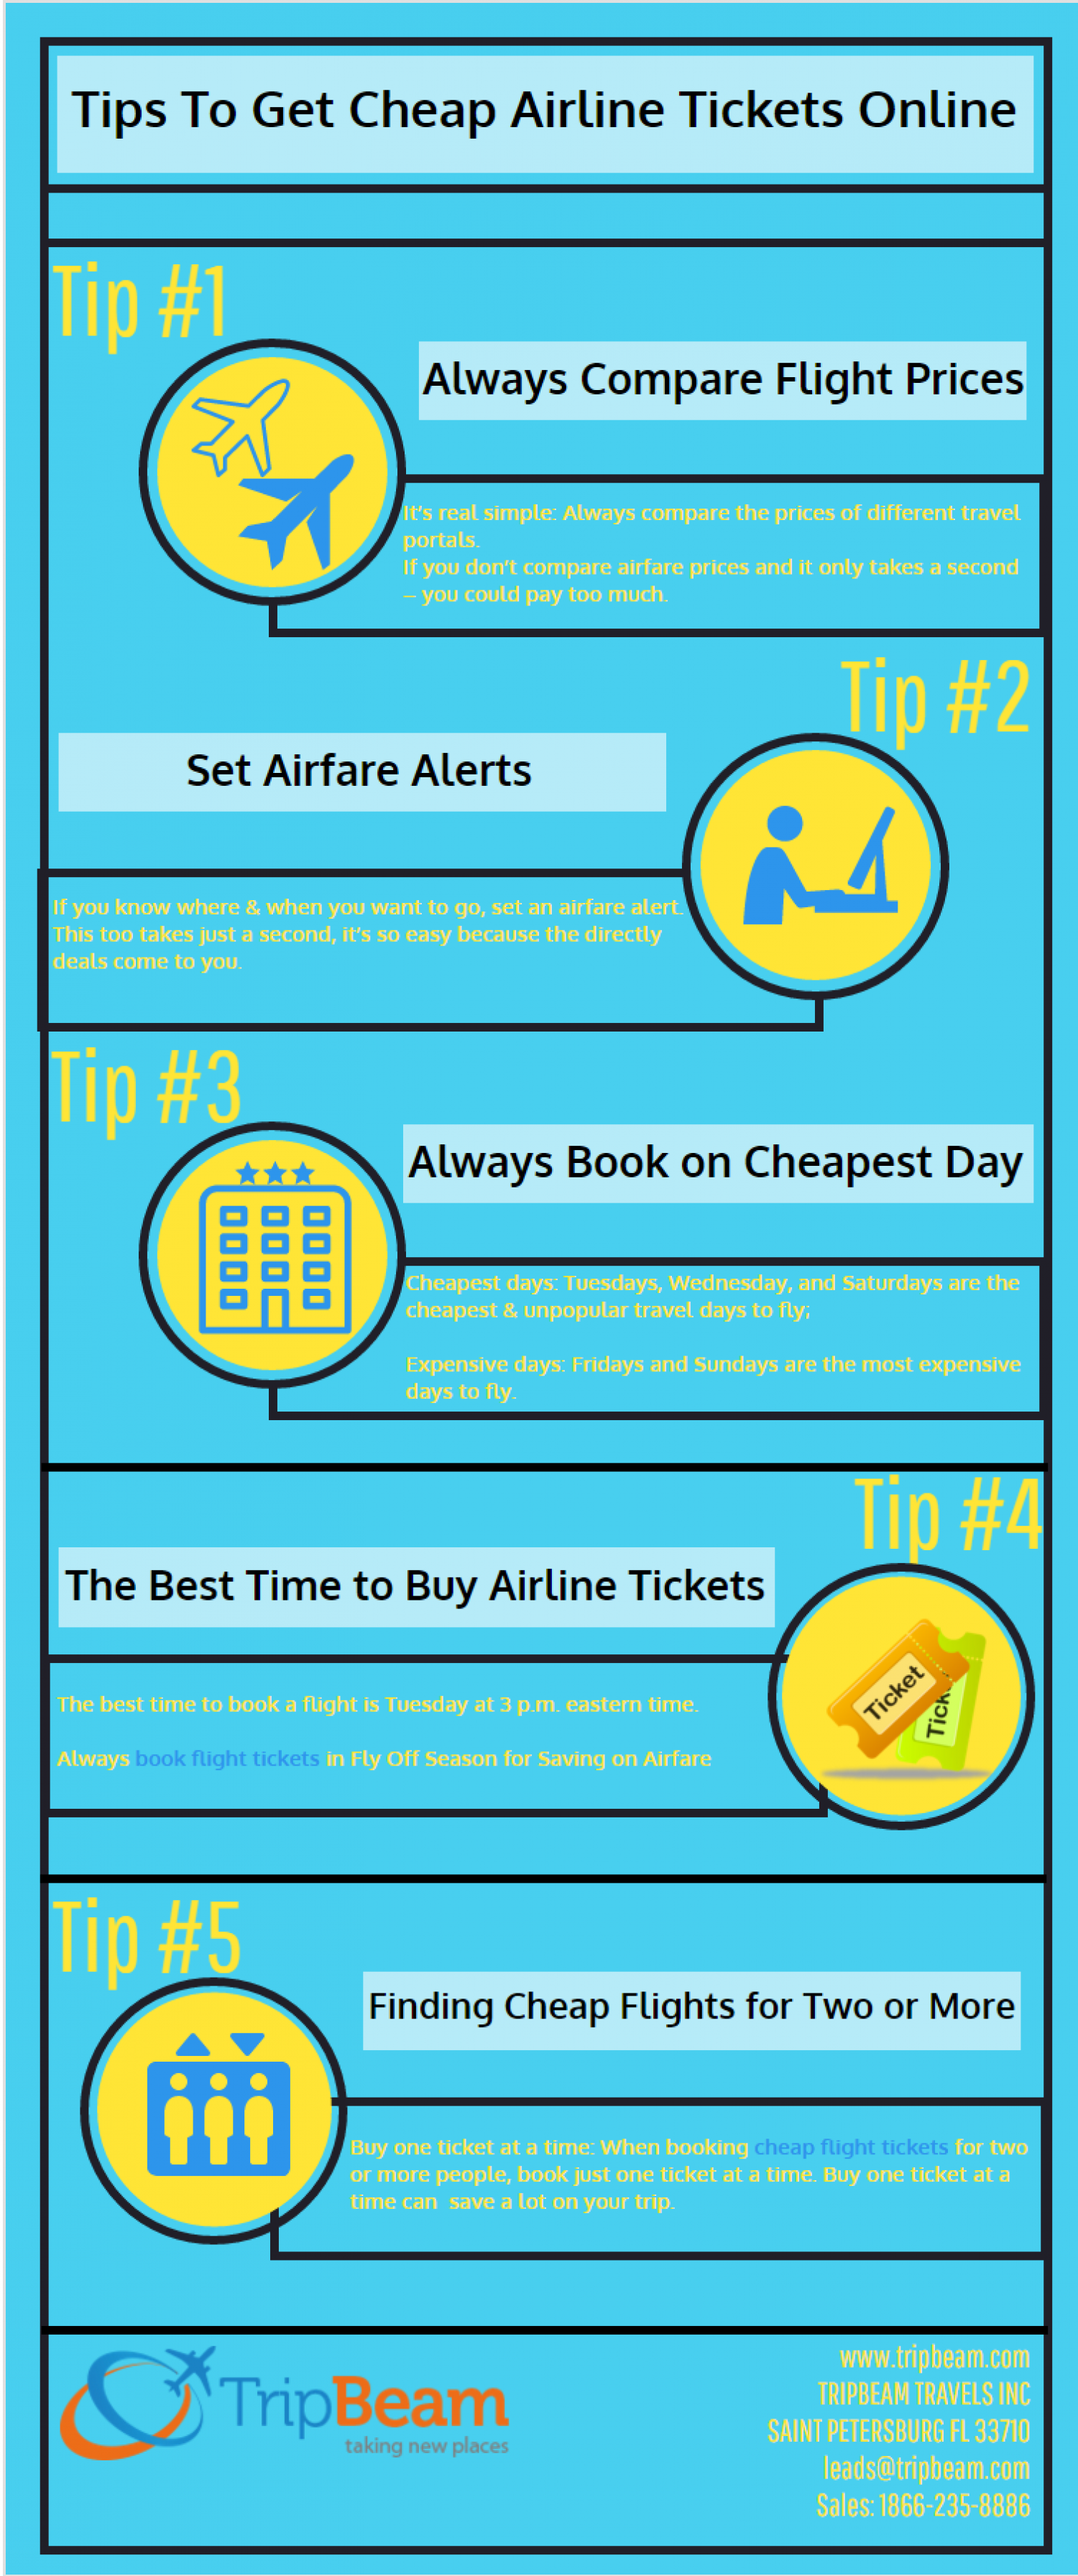 Tips to Get Cheap Airline Tickets Online Infographic